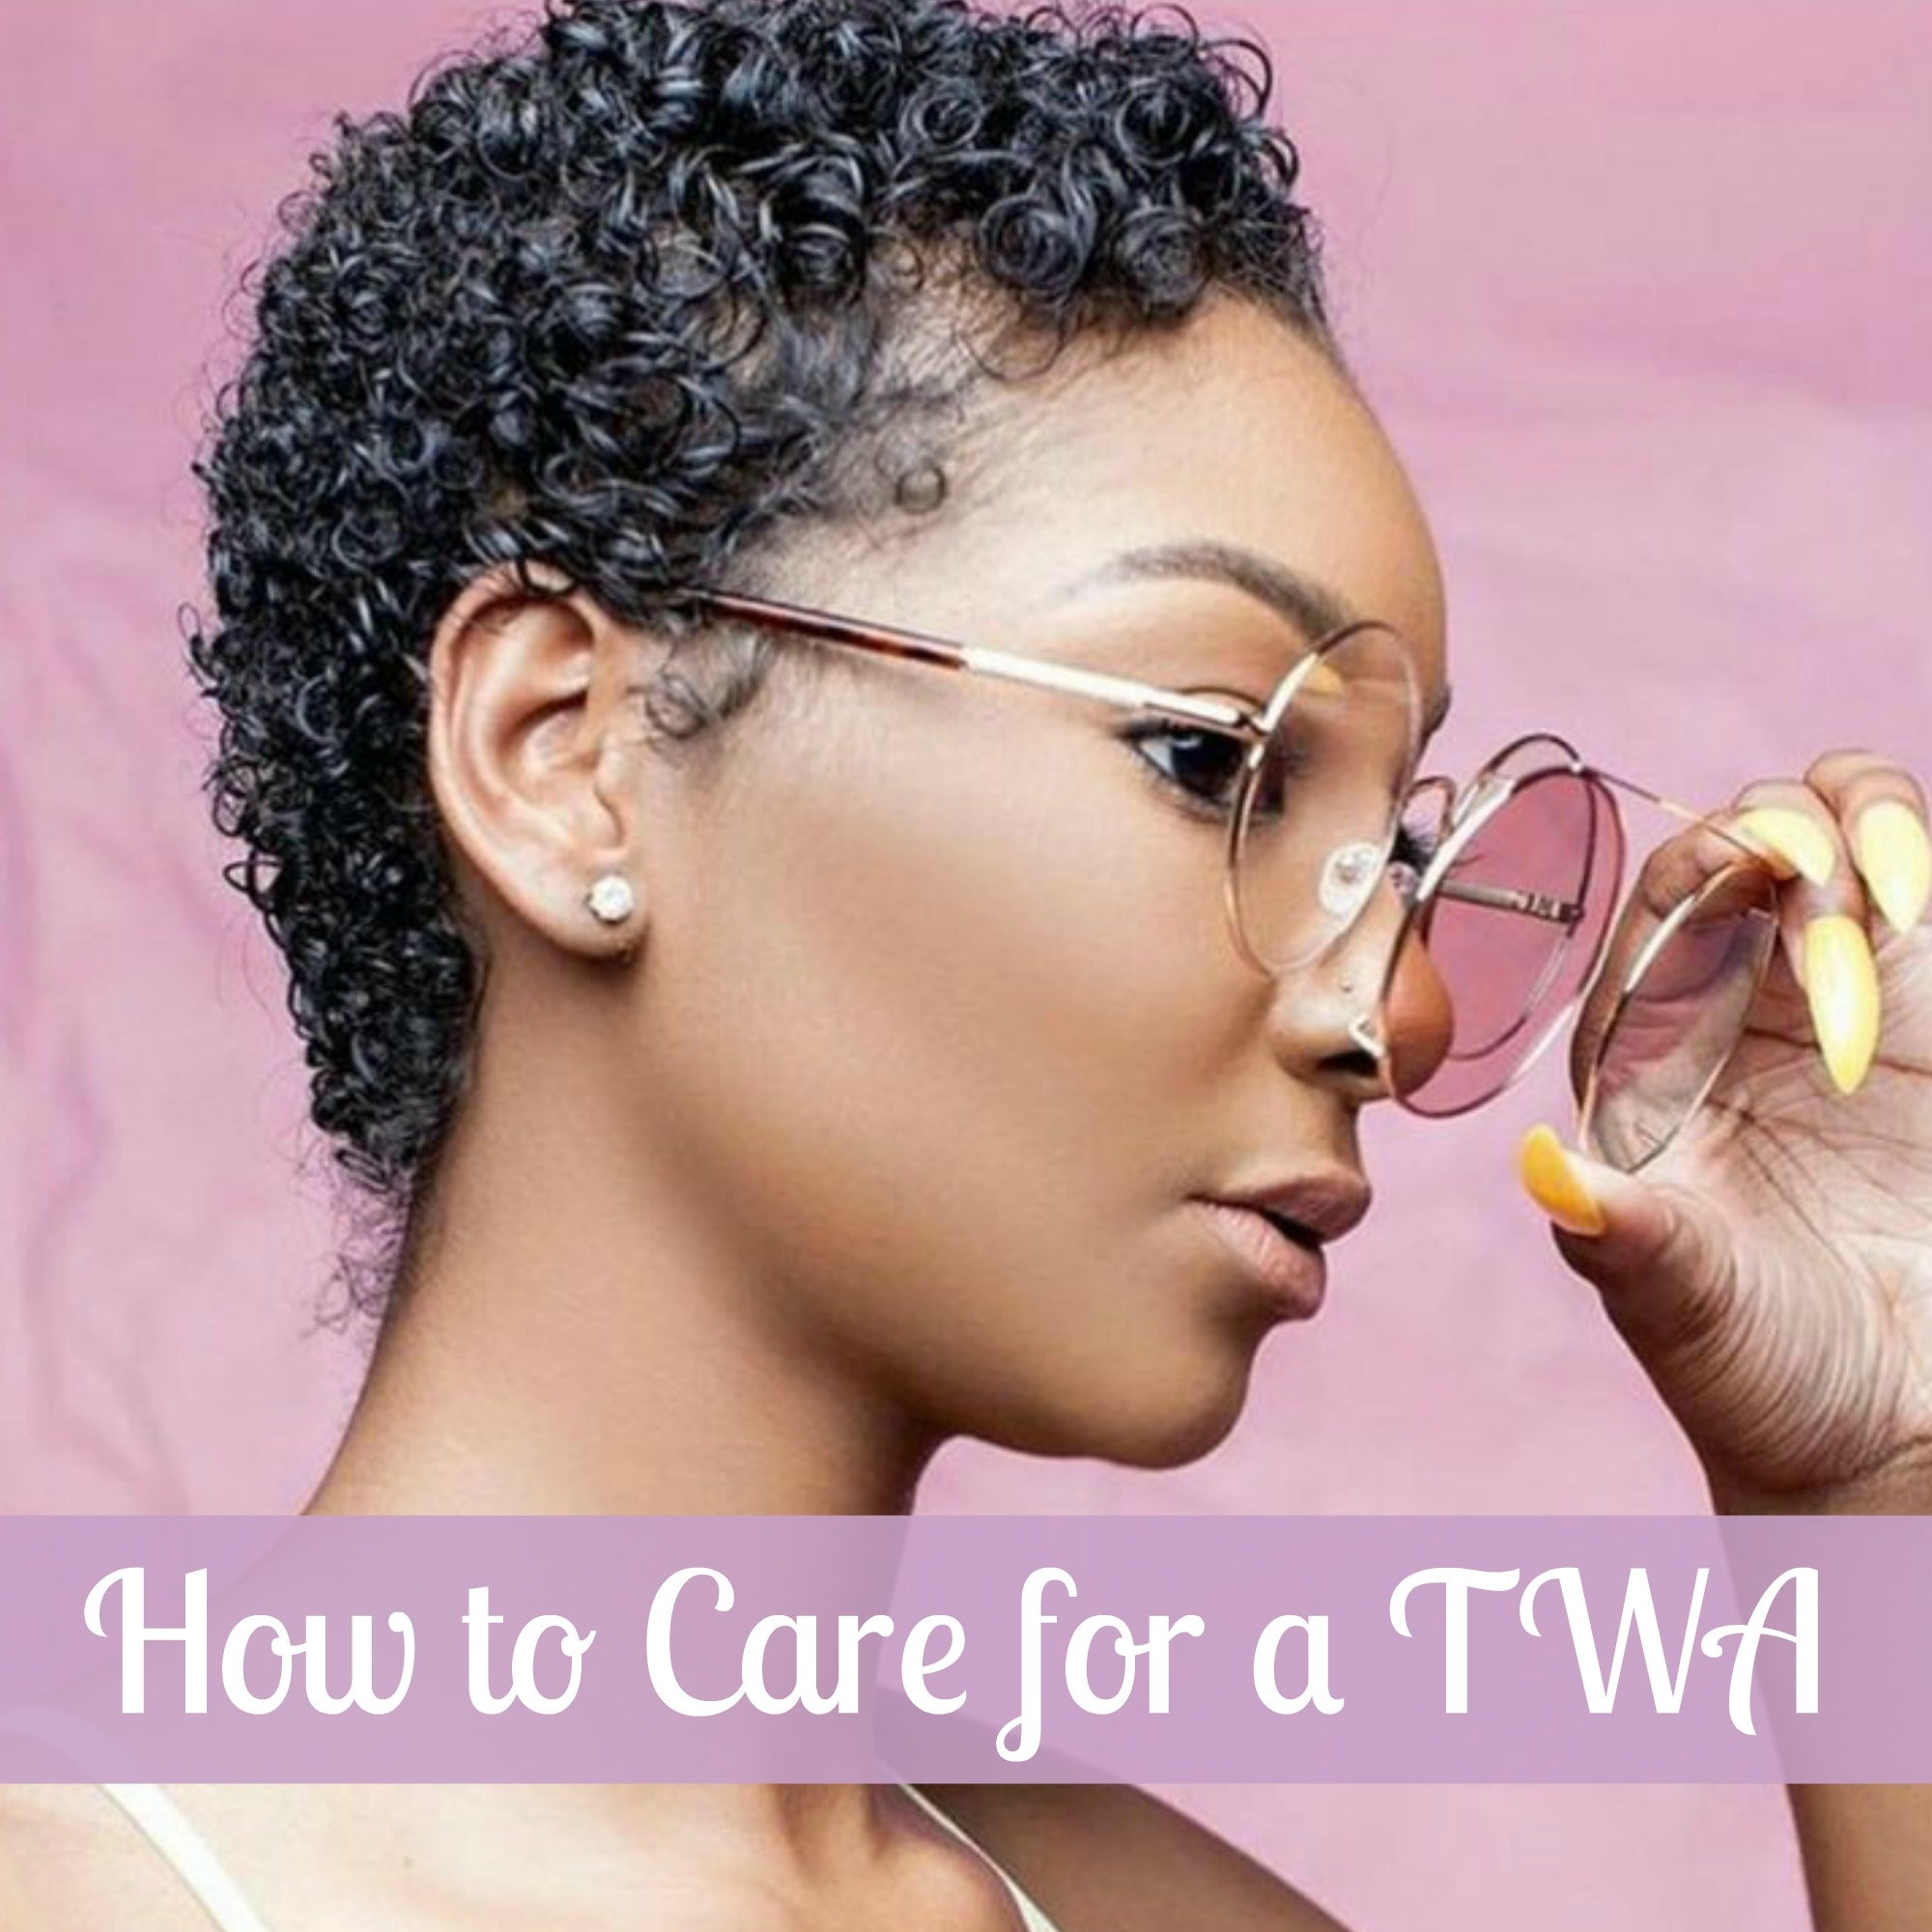 HOW TO CARE FOR A TWA